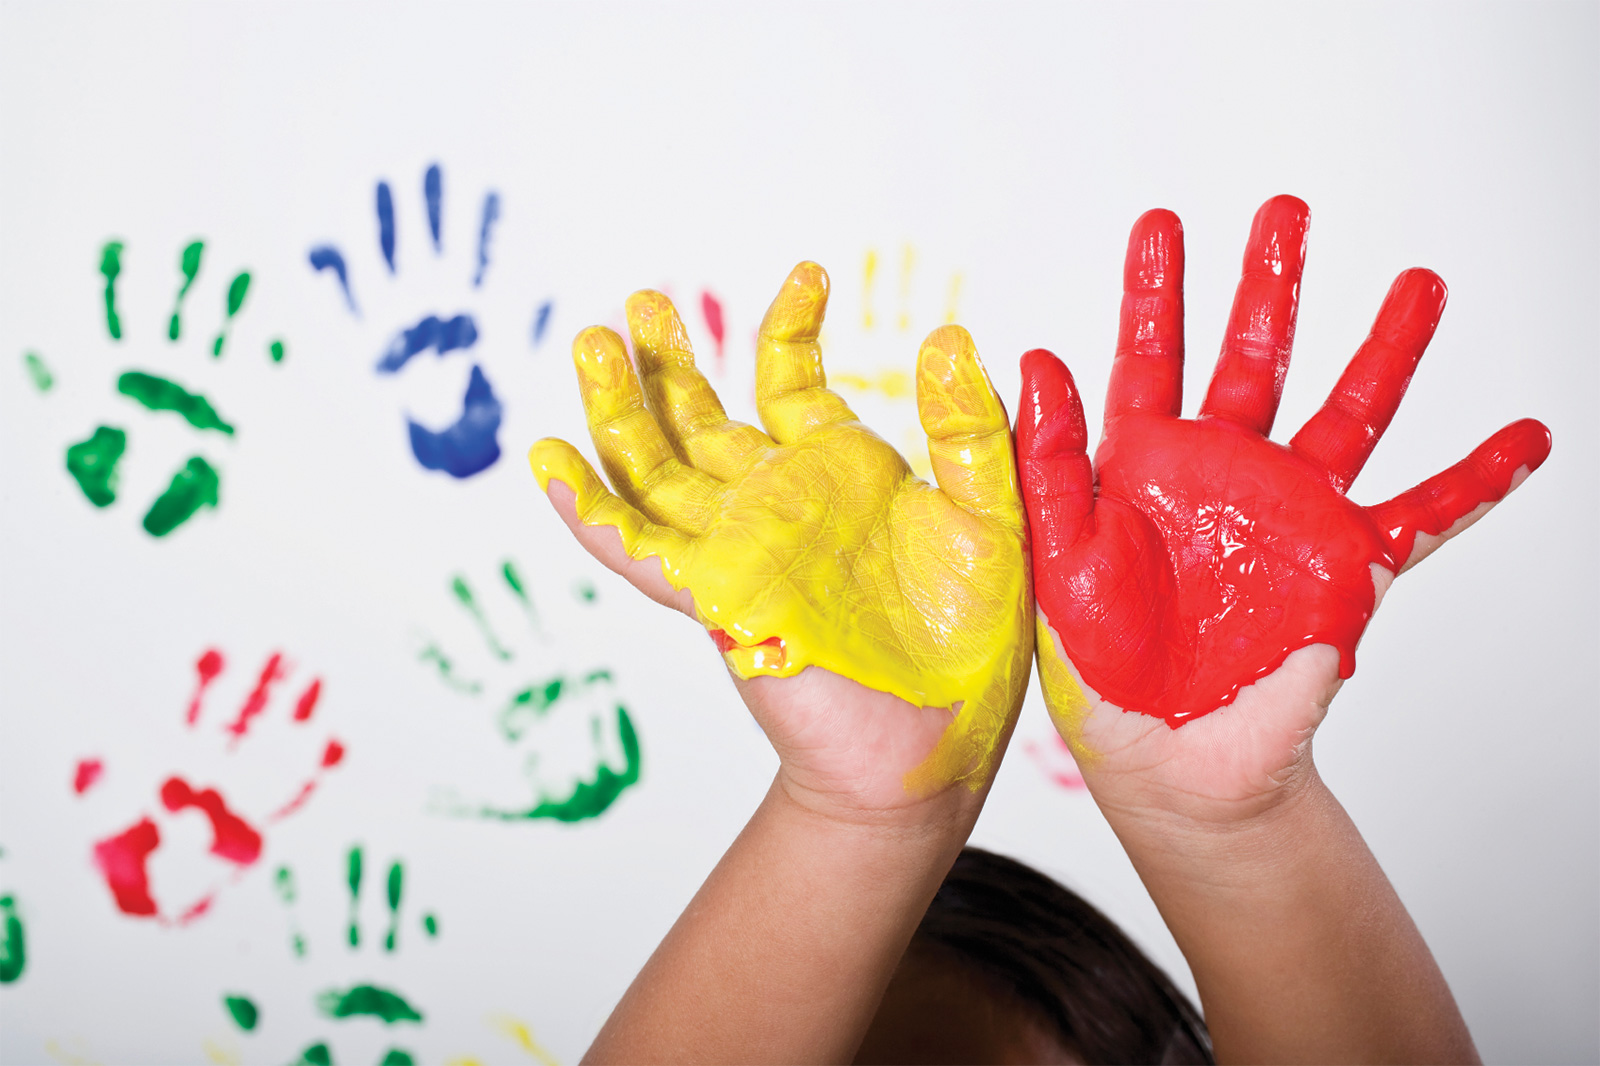 Hands of child covered in paint in front of white surface with paint handprints